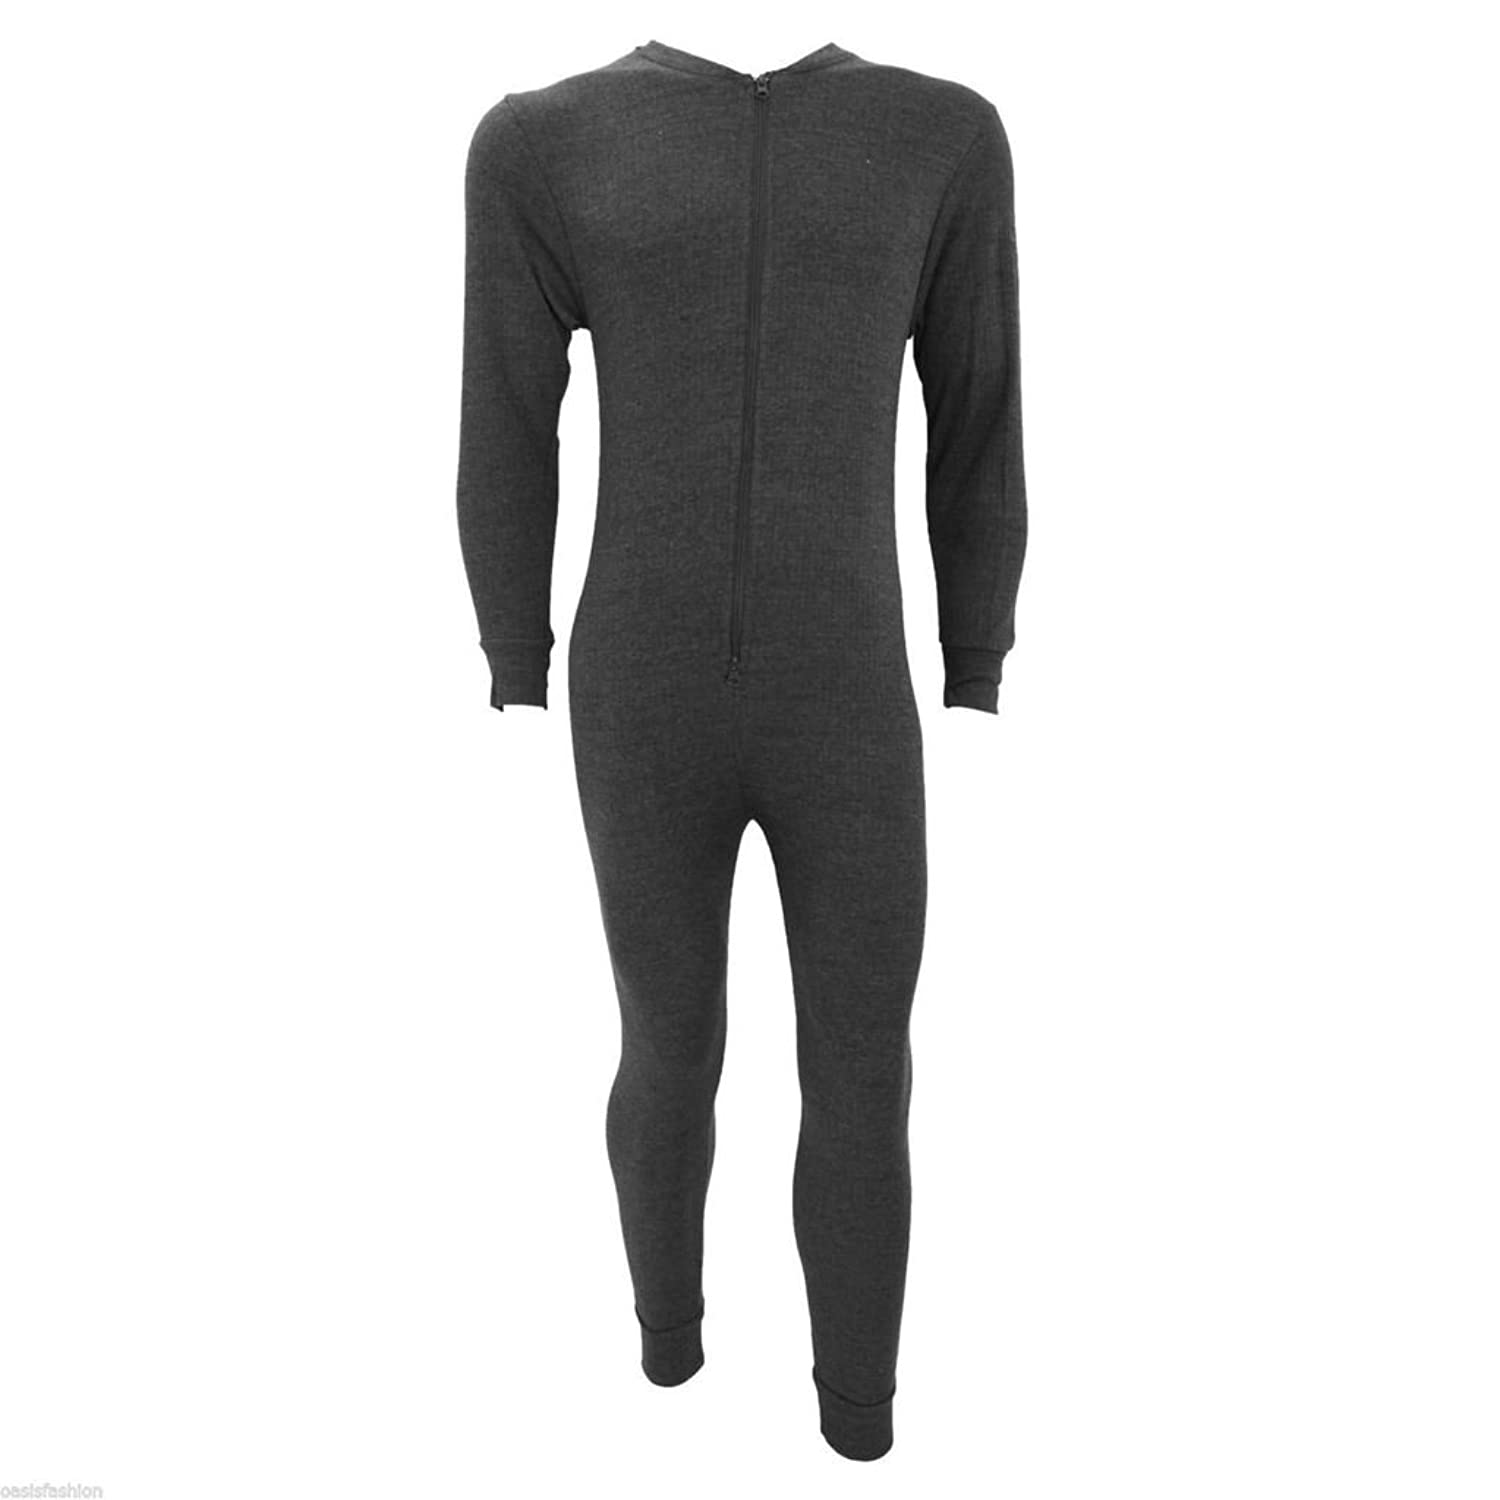 Amazon Best Sellers: Best Men's Thermal Underwear Union Suits